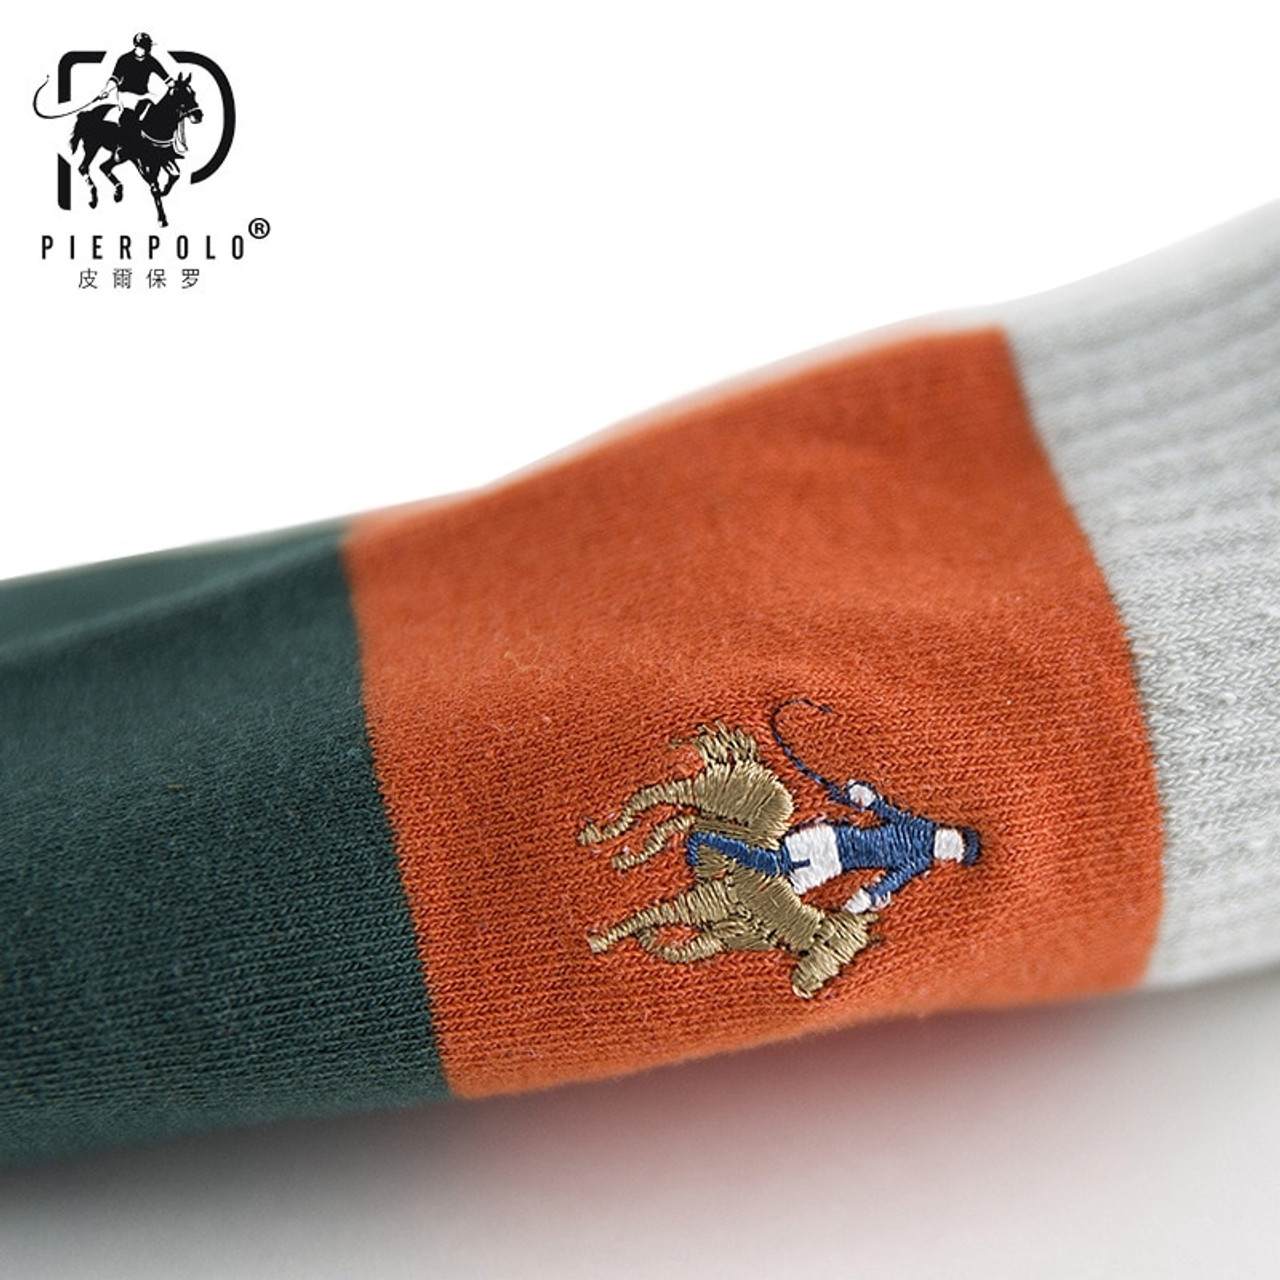 1e92a0cd9f65 ... High Quality Fashion Multicolor 5 Pairs Brand PIER POLO Casual Cotton  Socks Business Embroidery Men Socks ...